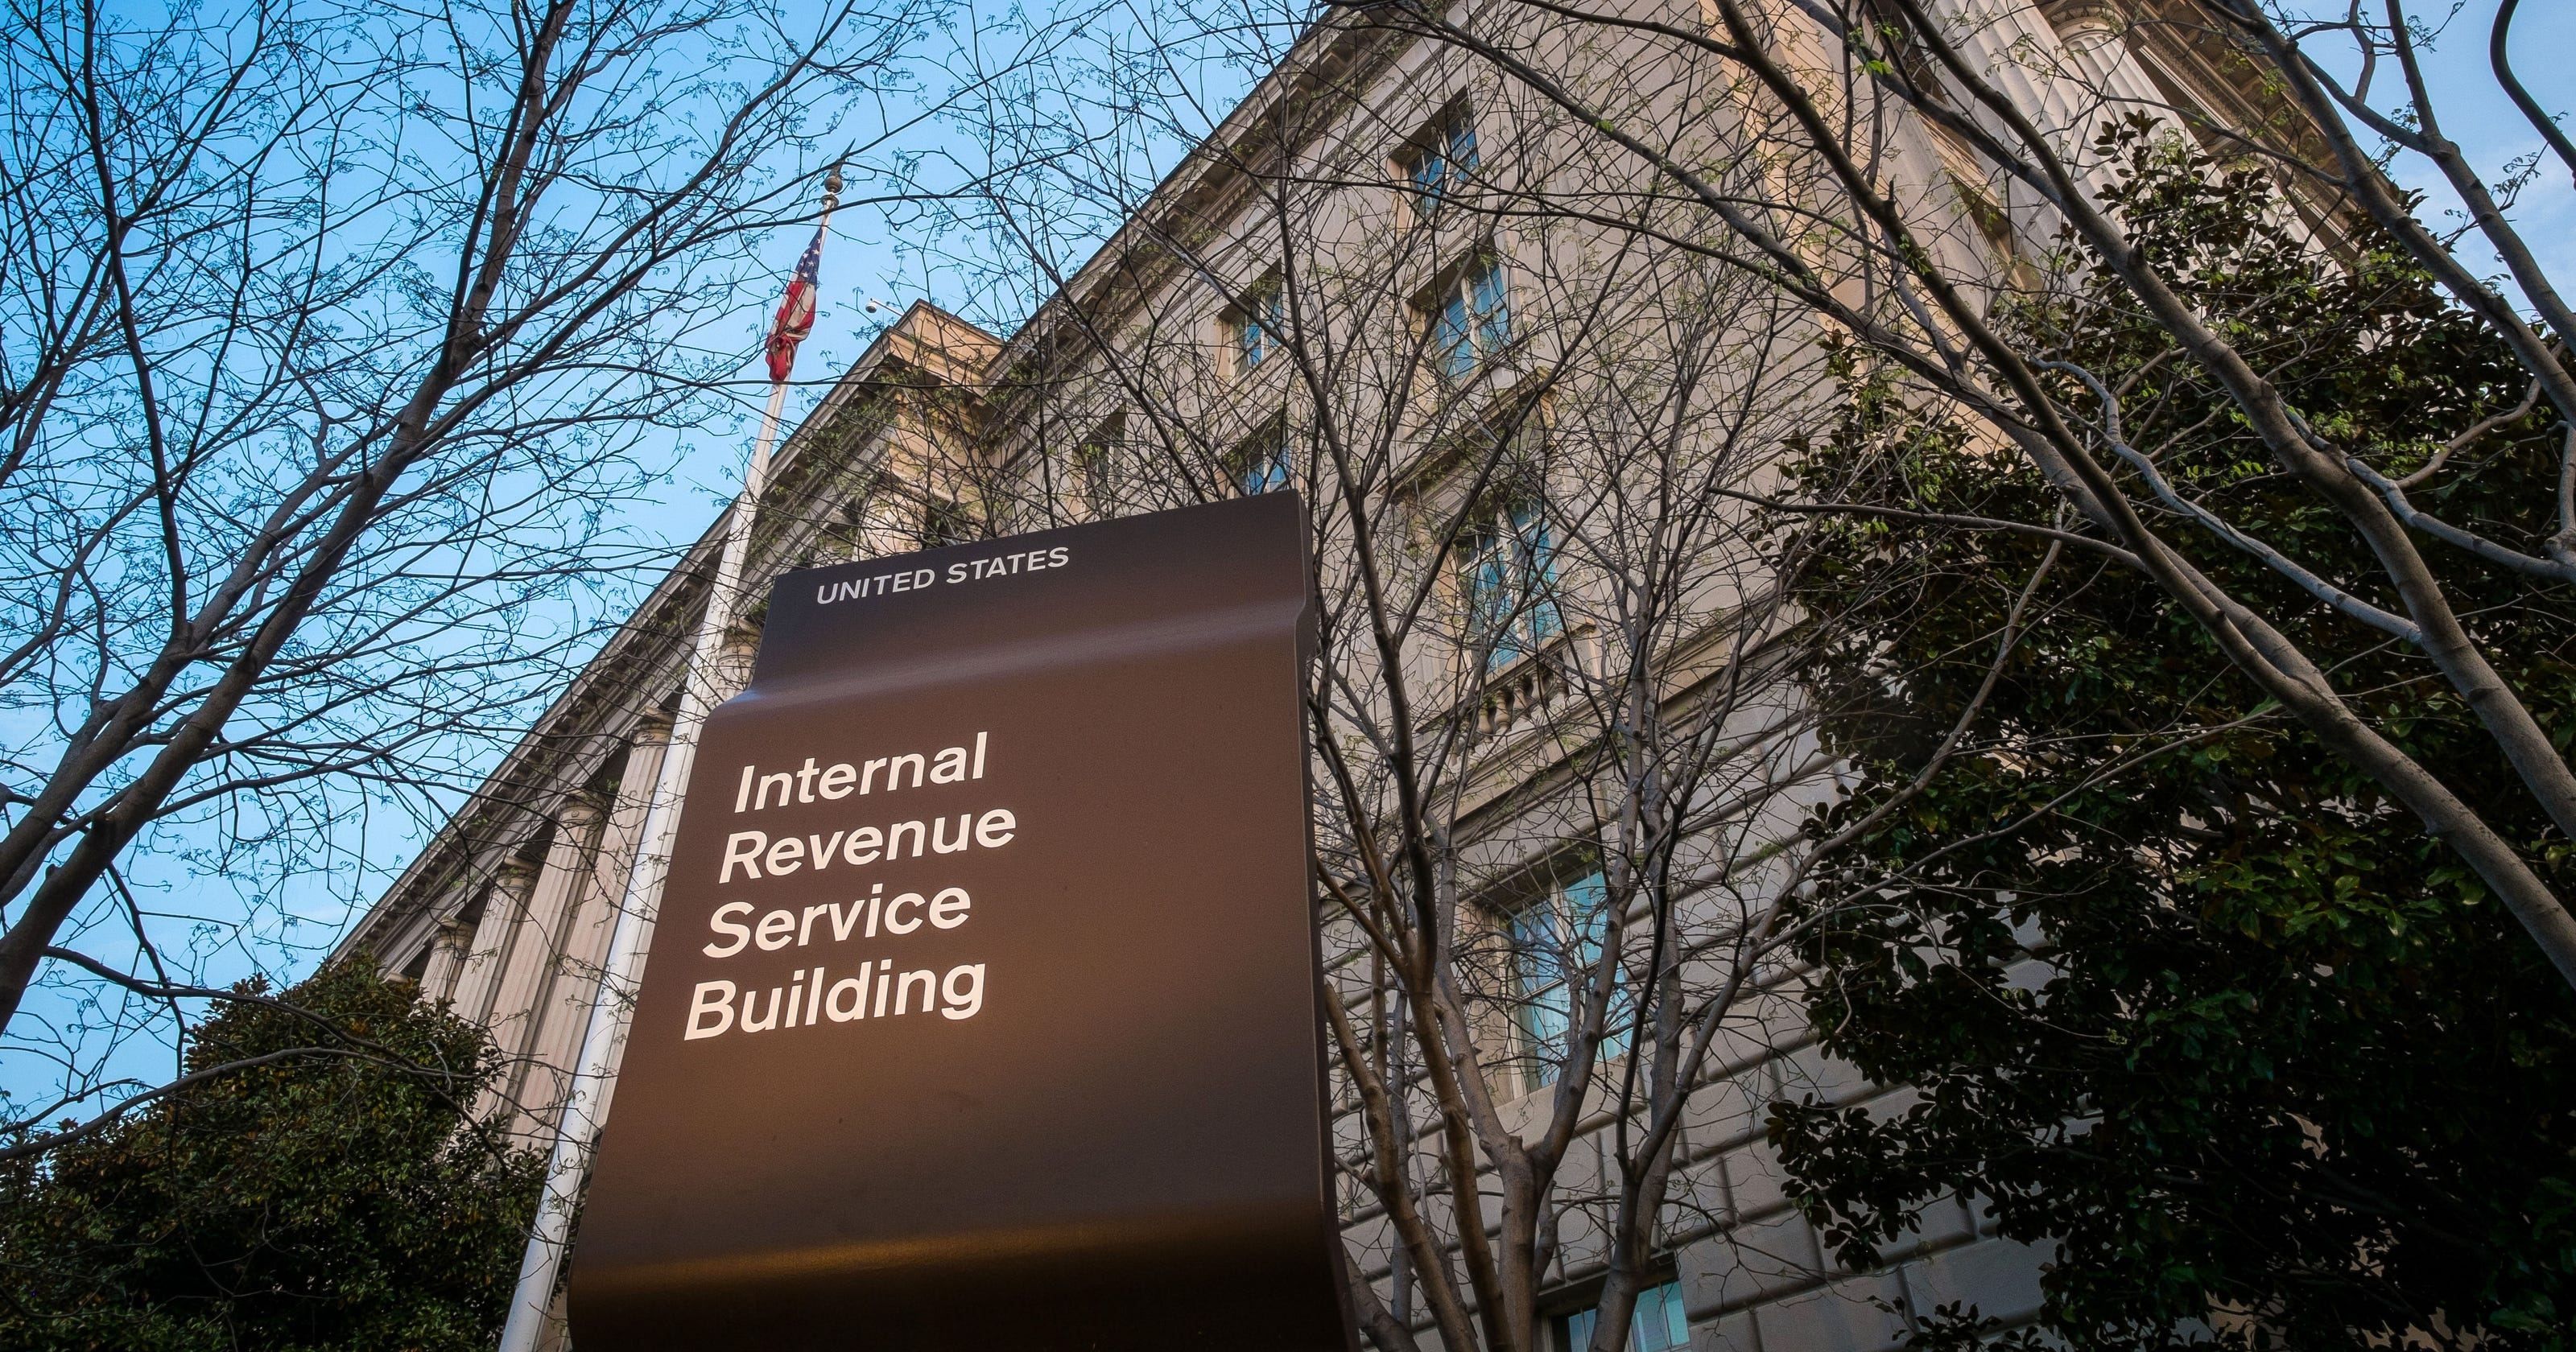 Irs Scam Suspects Conned Victims In At Least 21 States Wiring Money Walmart